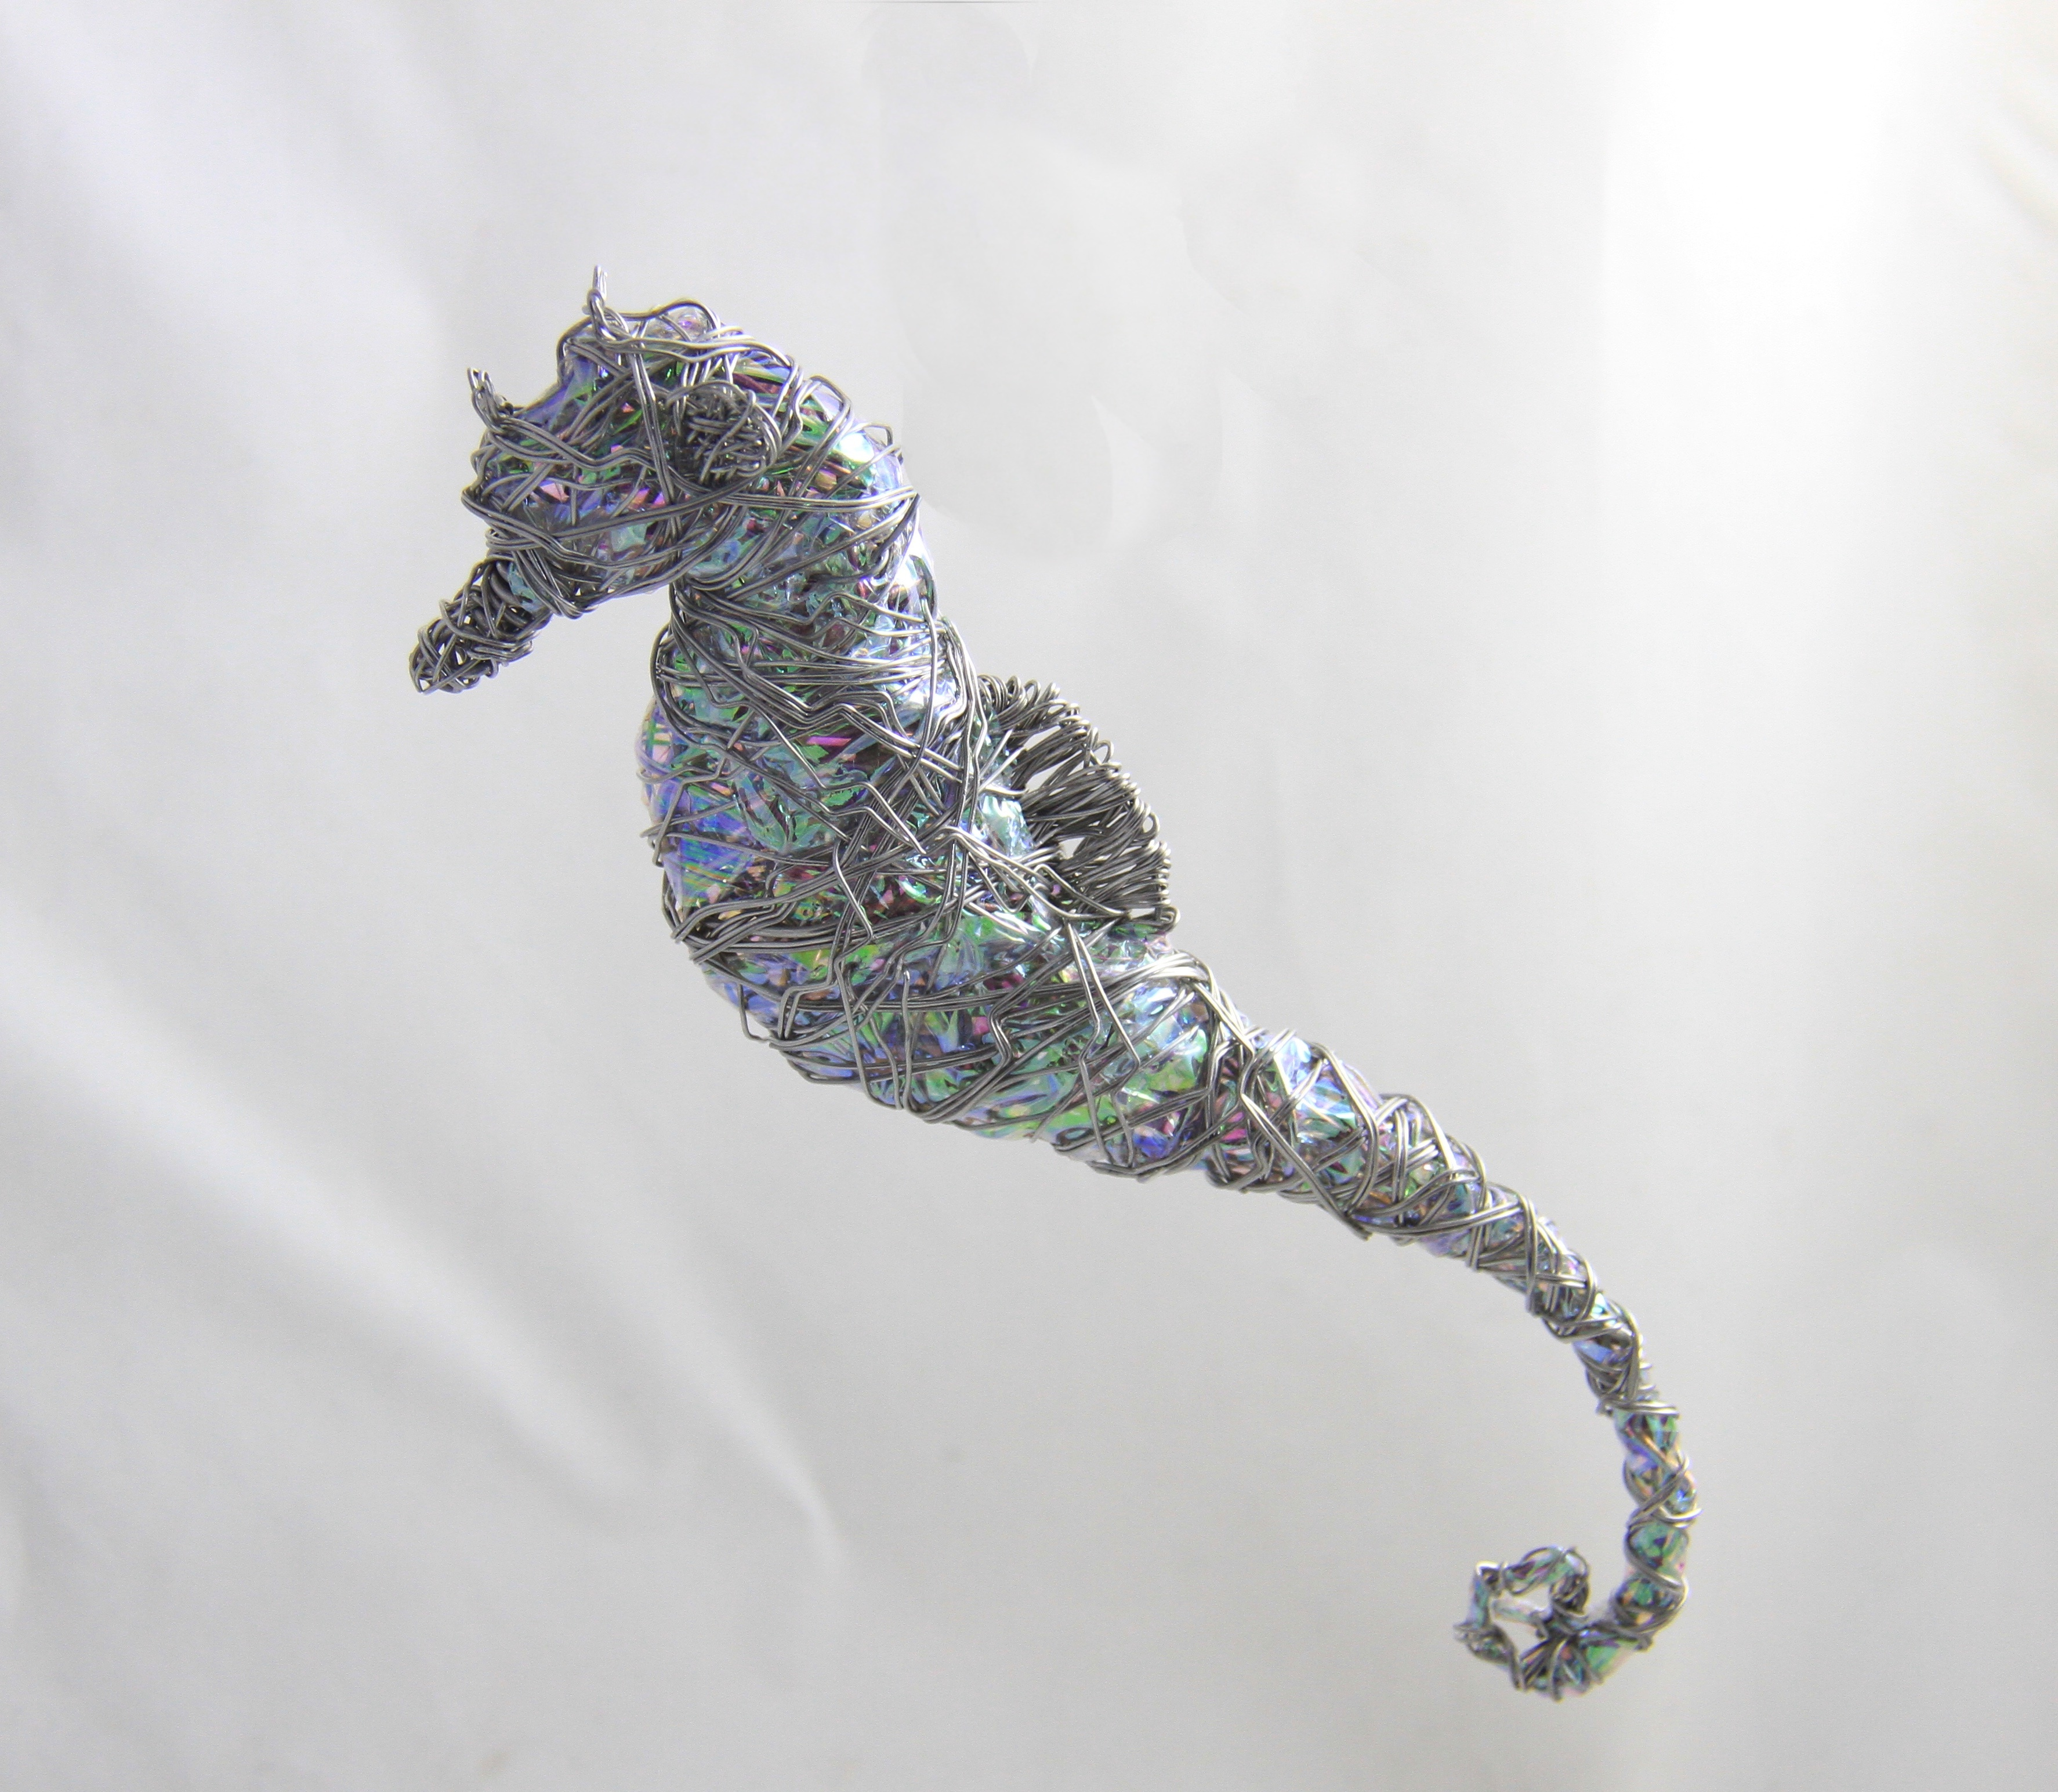 I Made This Seahorse From Wire And A Reflective Film.